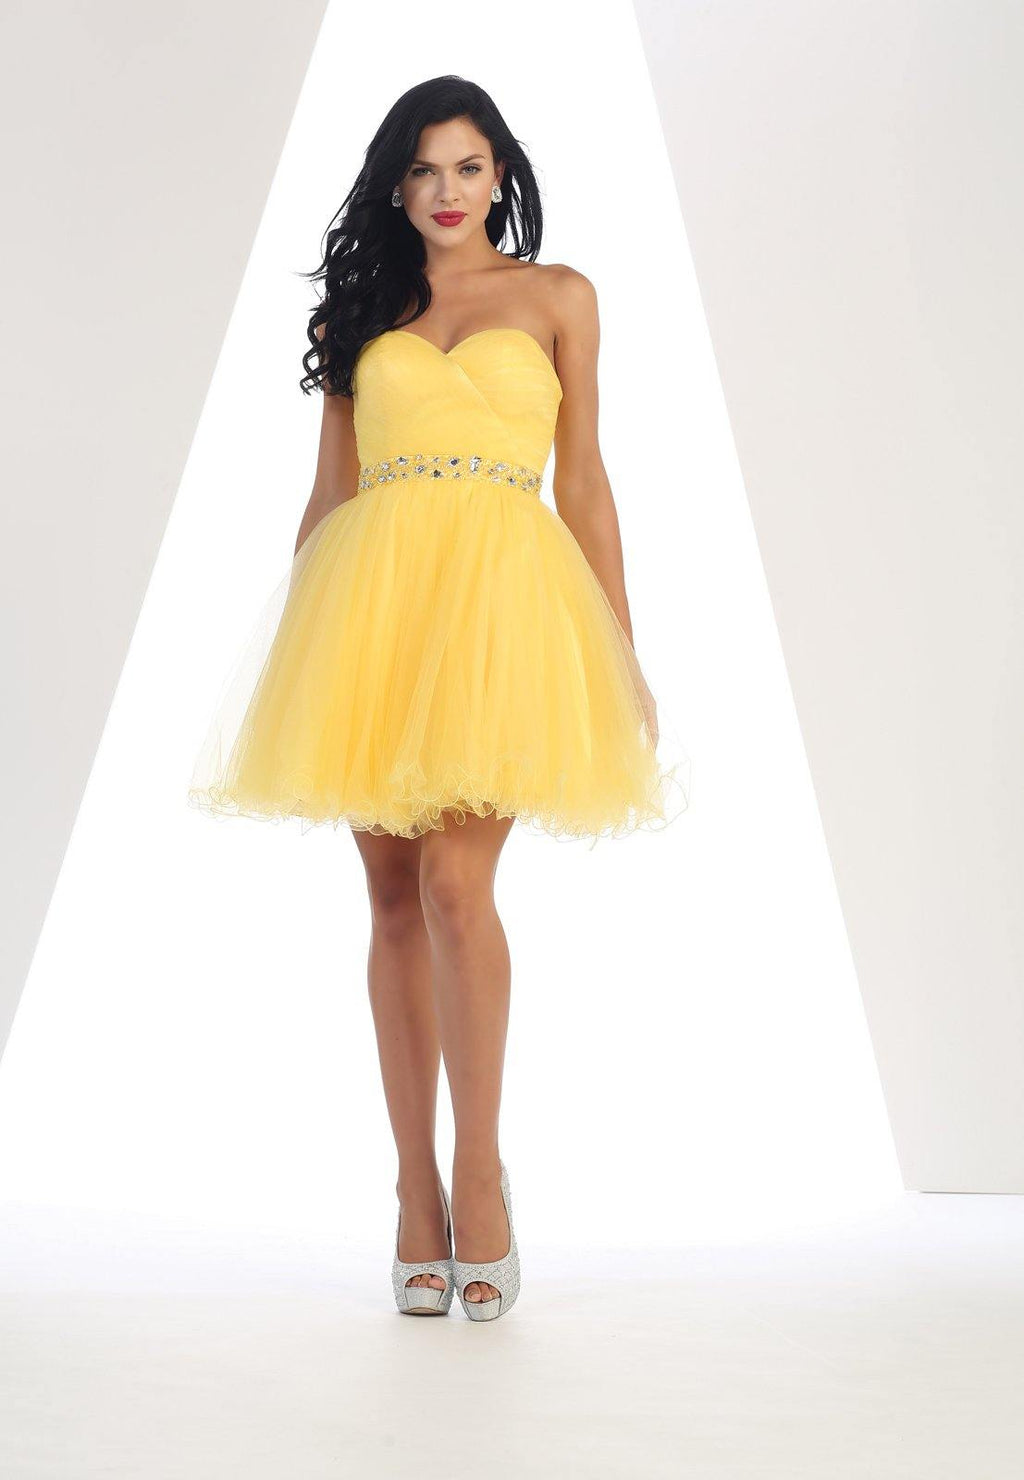 Strapless Short Dress Homecoming - The Dress Outlet Yellow